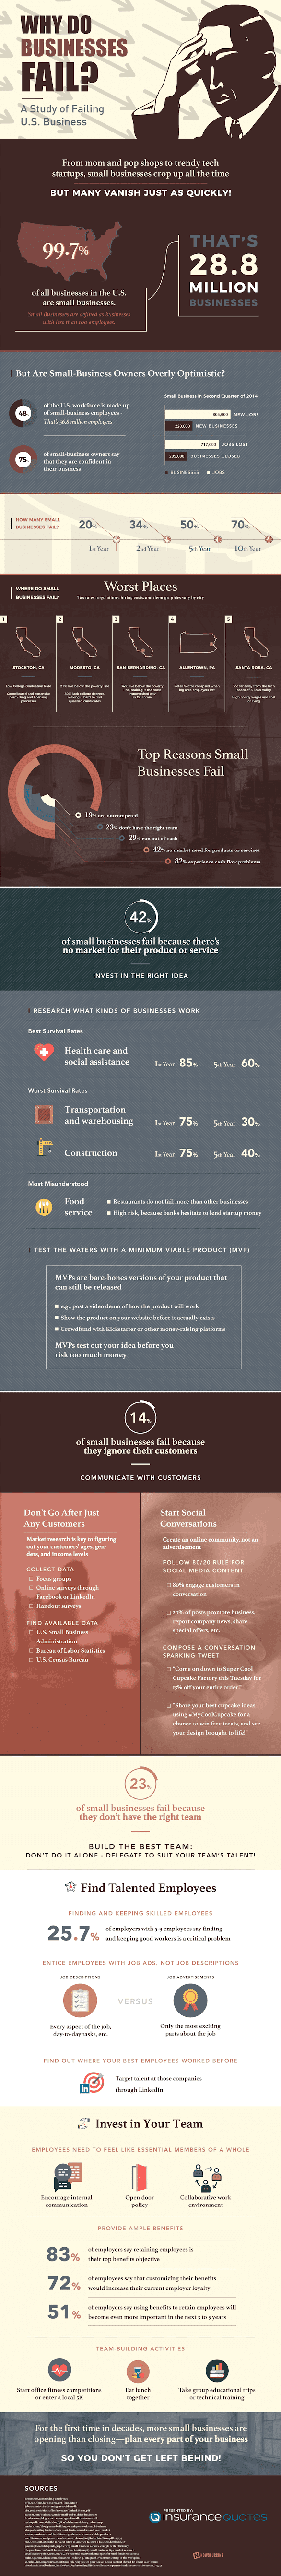 Why Do Businesses Fail? #infographic